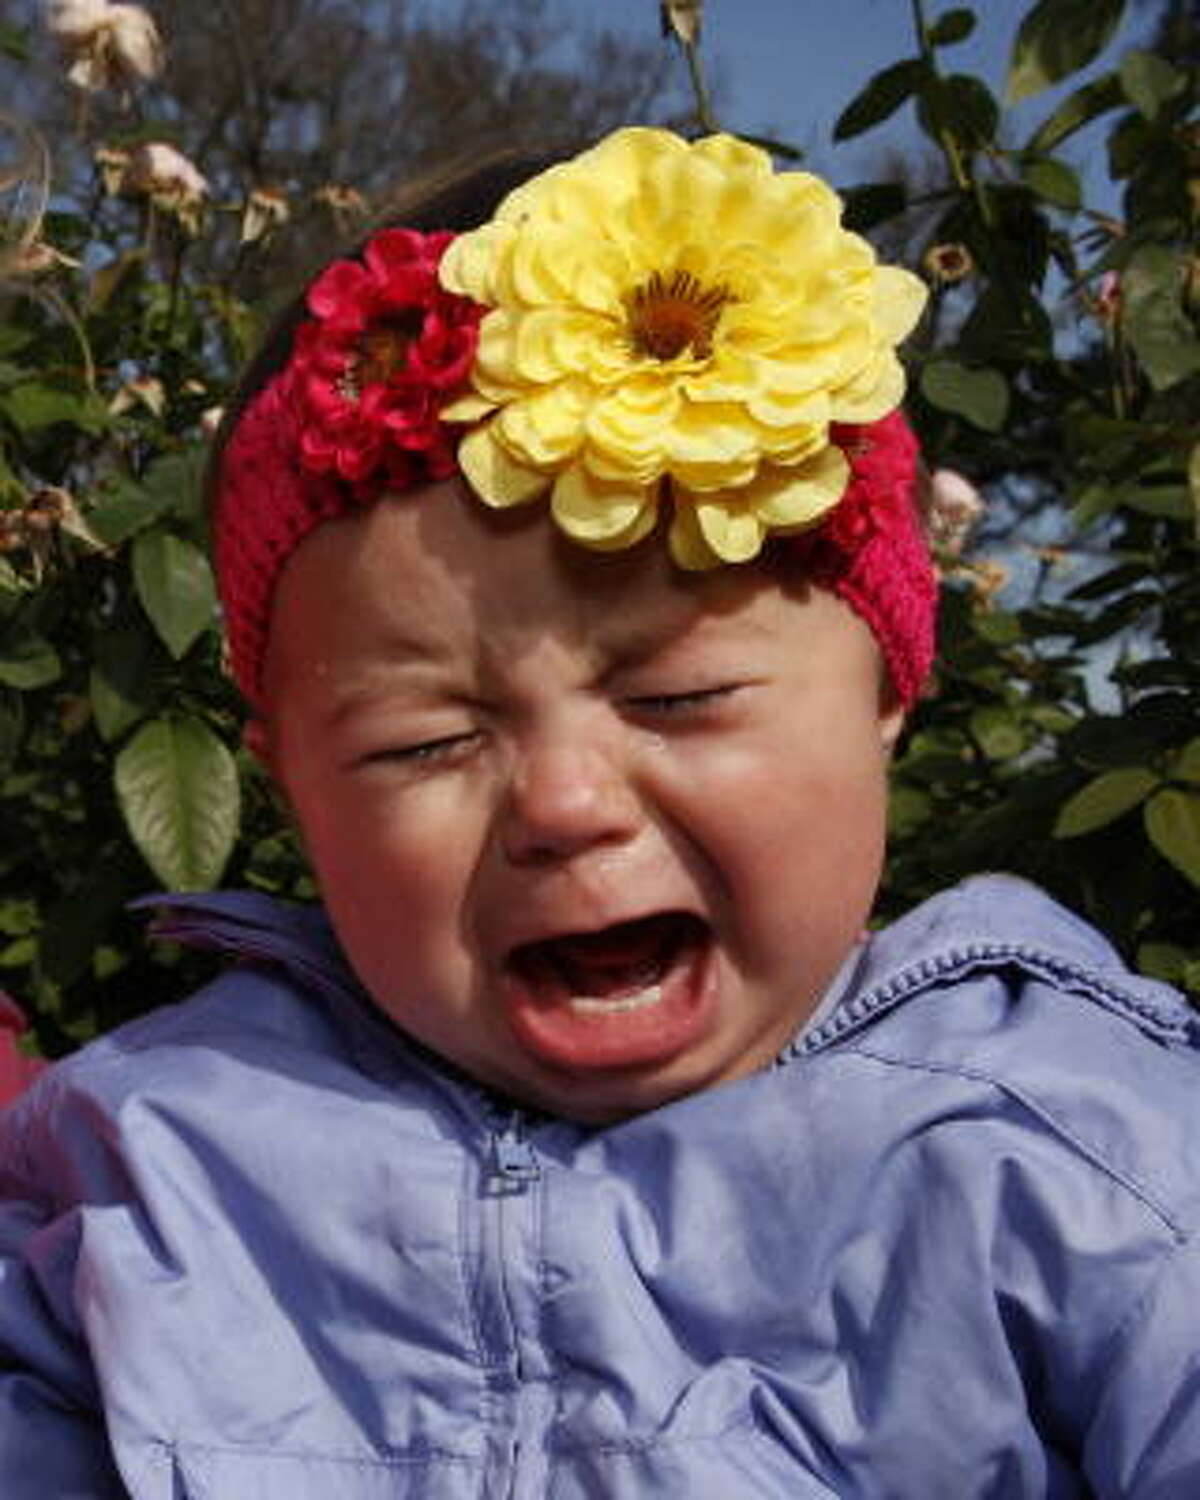 Eleanor, not having a good time on picture day! by jklentzmanTo share pictures of your kid, visit the My Kid gallery.